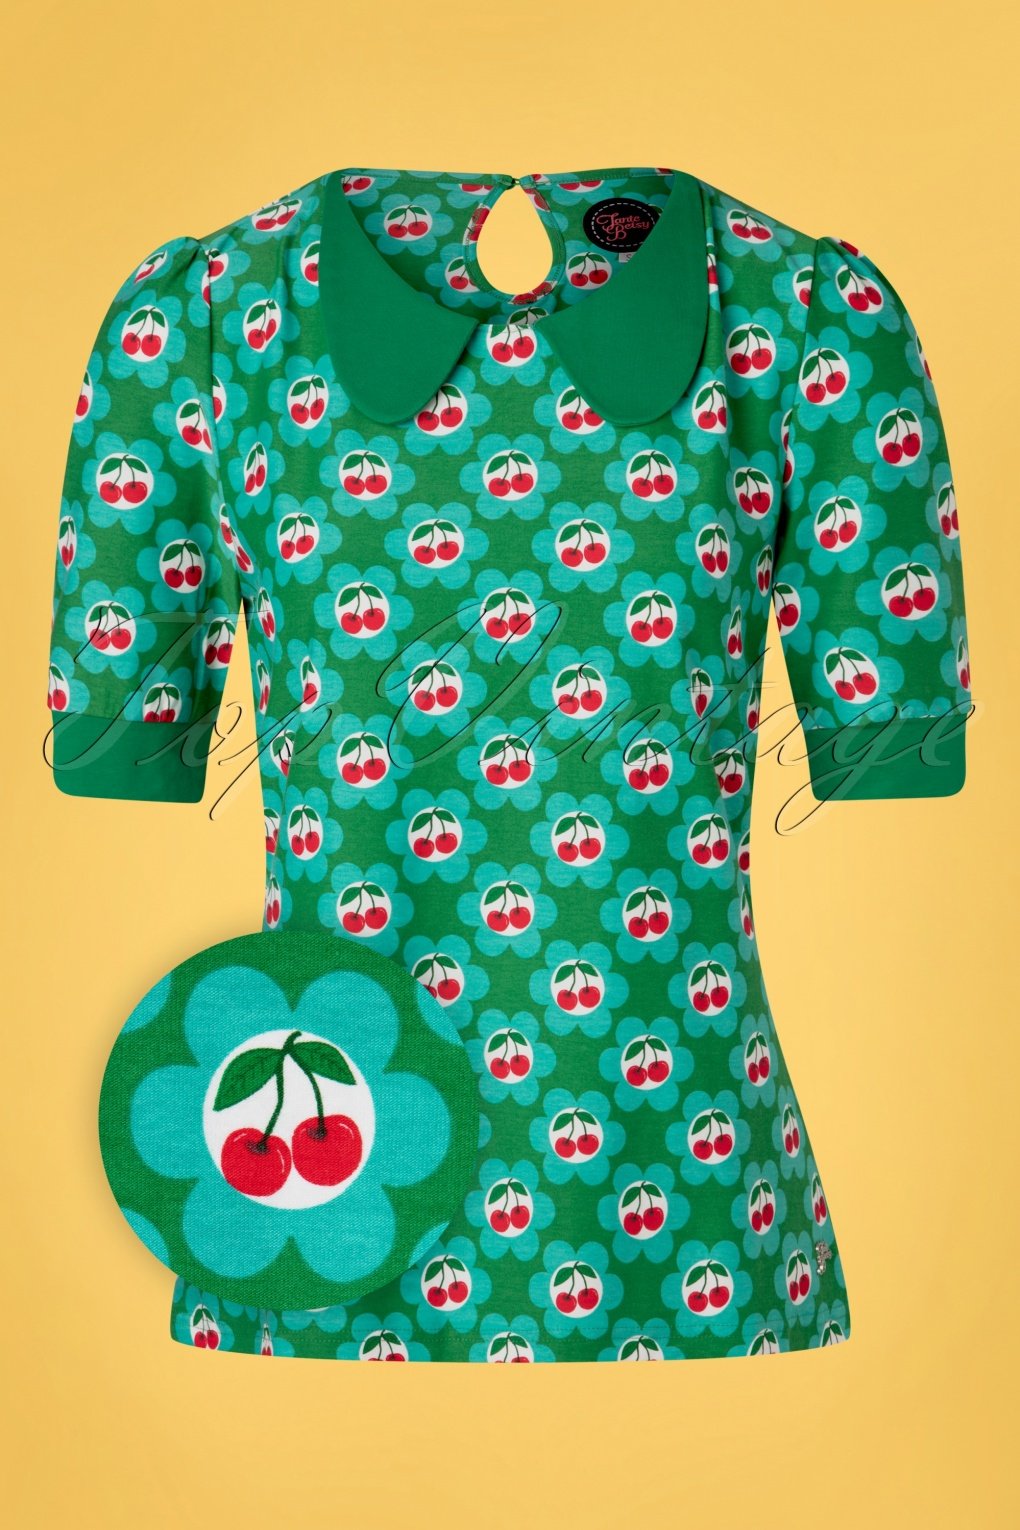 60s Shirts, T-shirts, Blouses, Hippie Shirts 60s Sunday Cherry Shirt in Blossom Green £43.65 AT vintagedancer.com